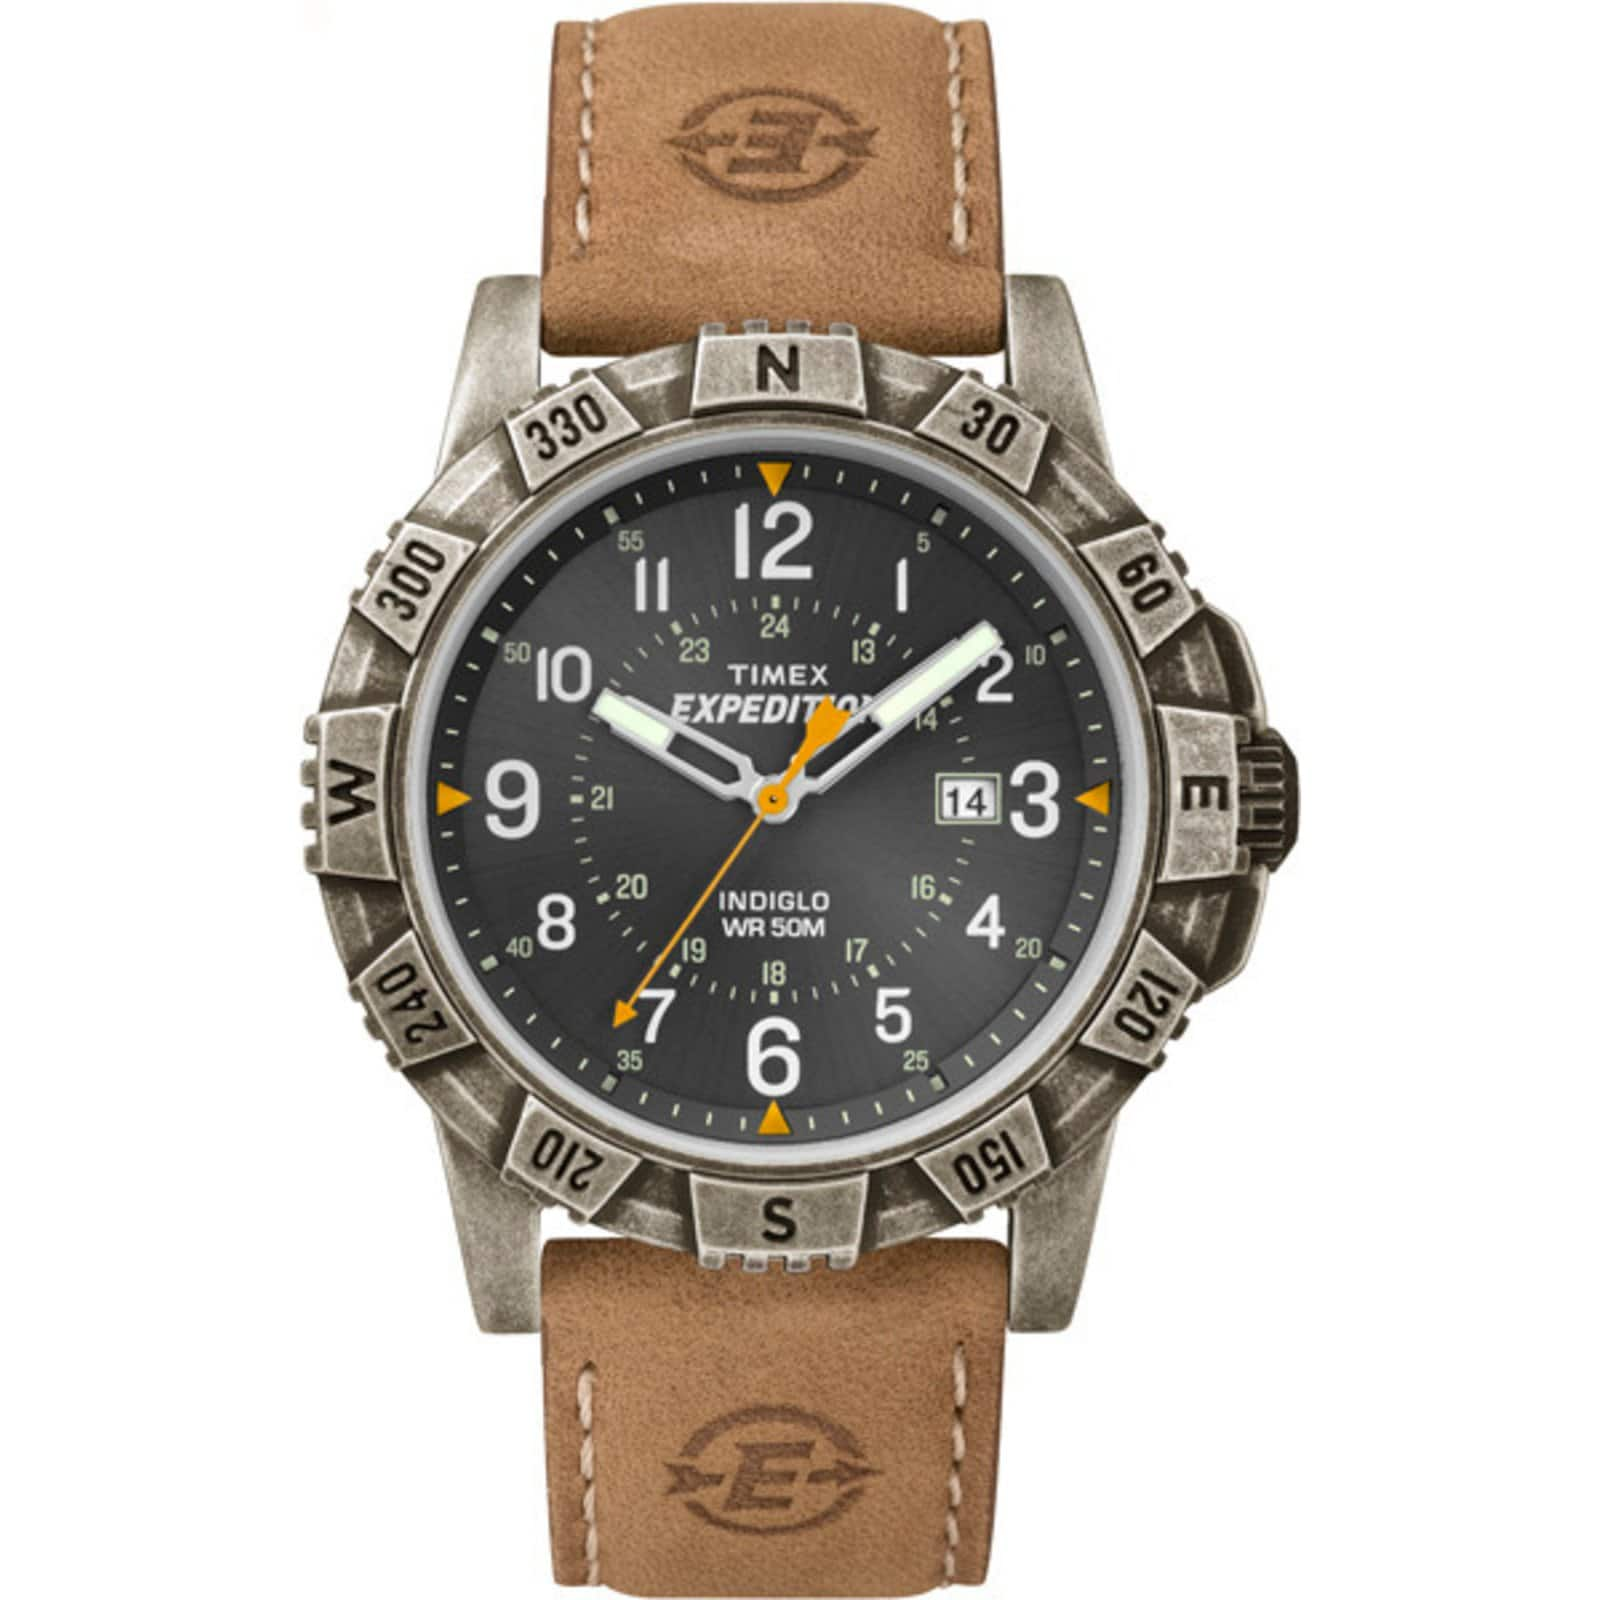 Timex Men's Expedition Rugged Metal Watch $19.19